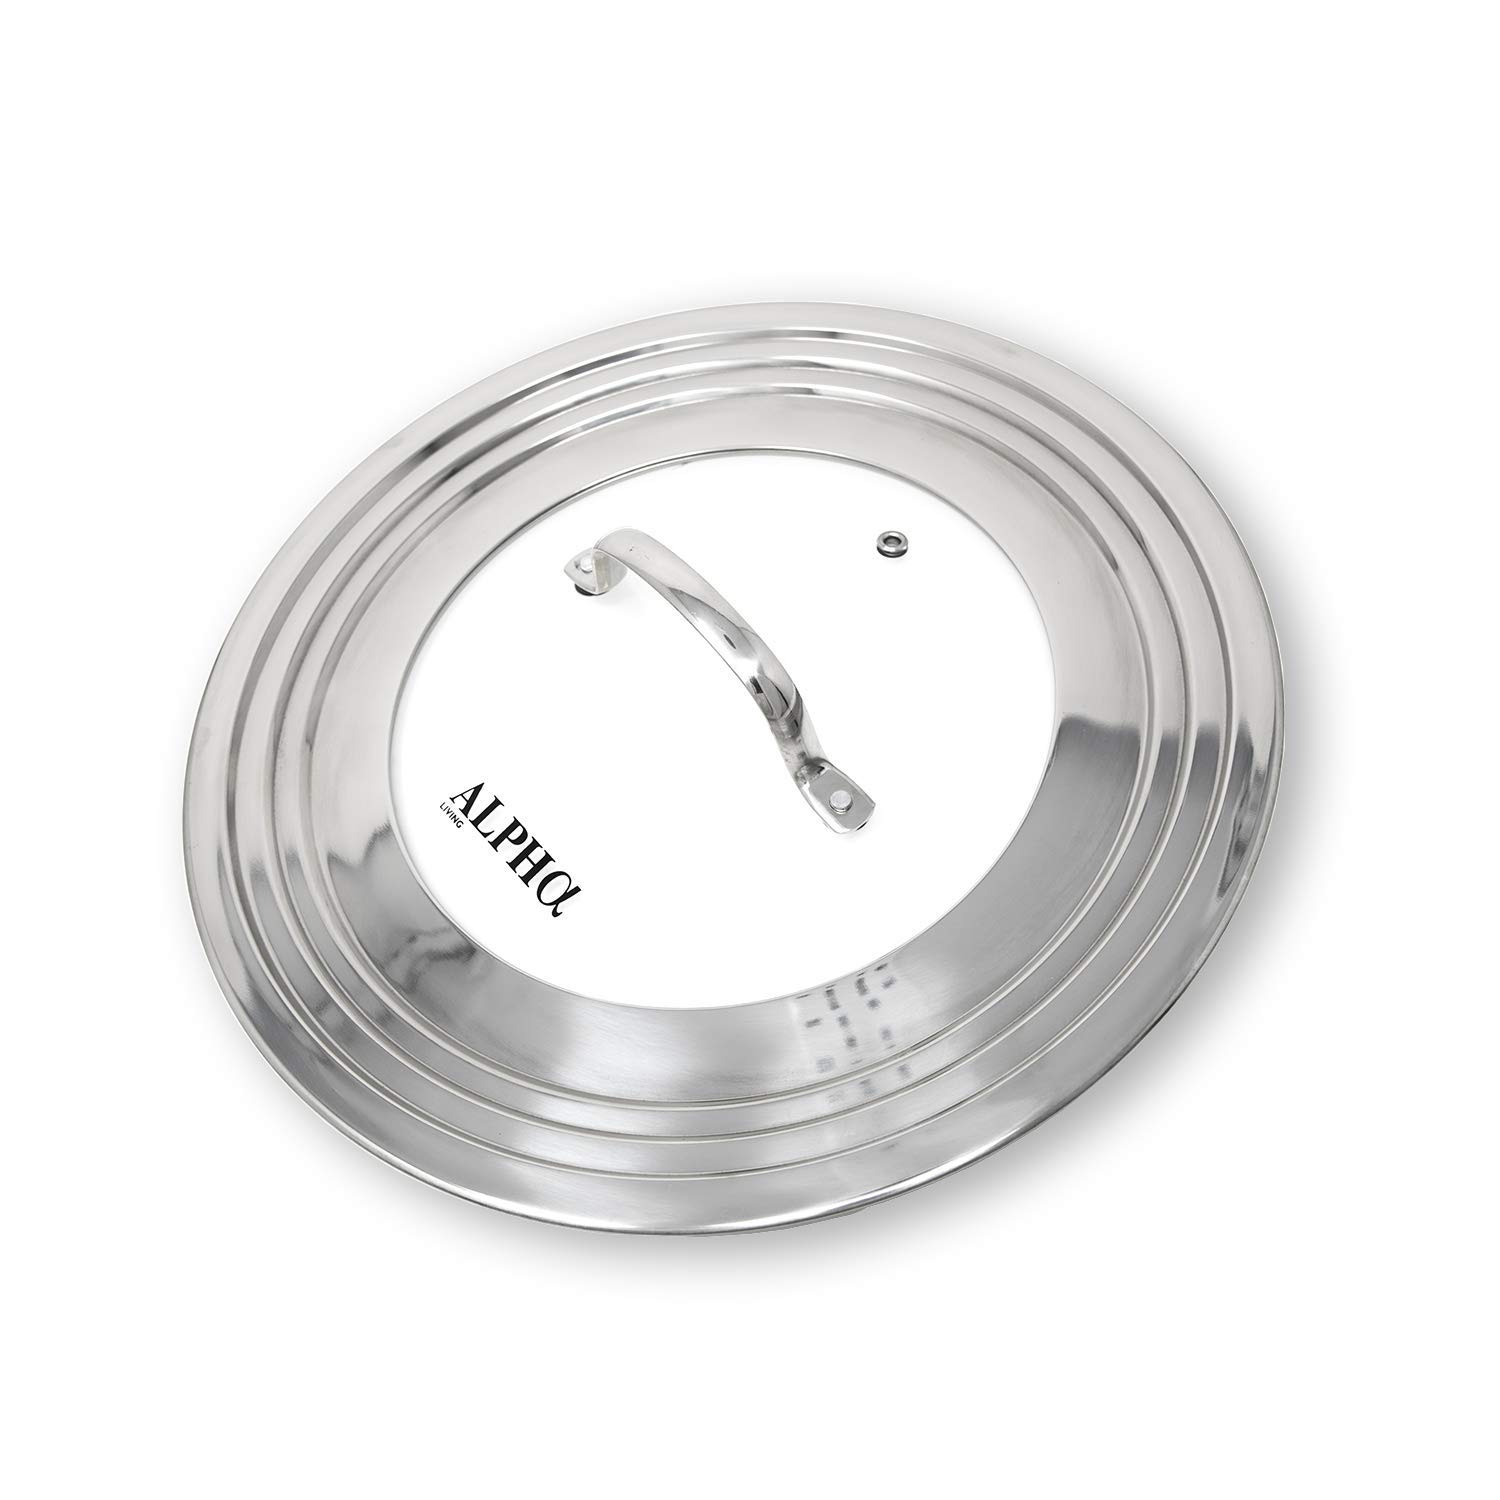 Alpha Living 60015 7'' to 12'' High Grade Stainless Steel and Glass Universal, Fits All Pots, Replacement Frying Pan Cover and Skillet Lids, 7-12 inches,